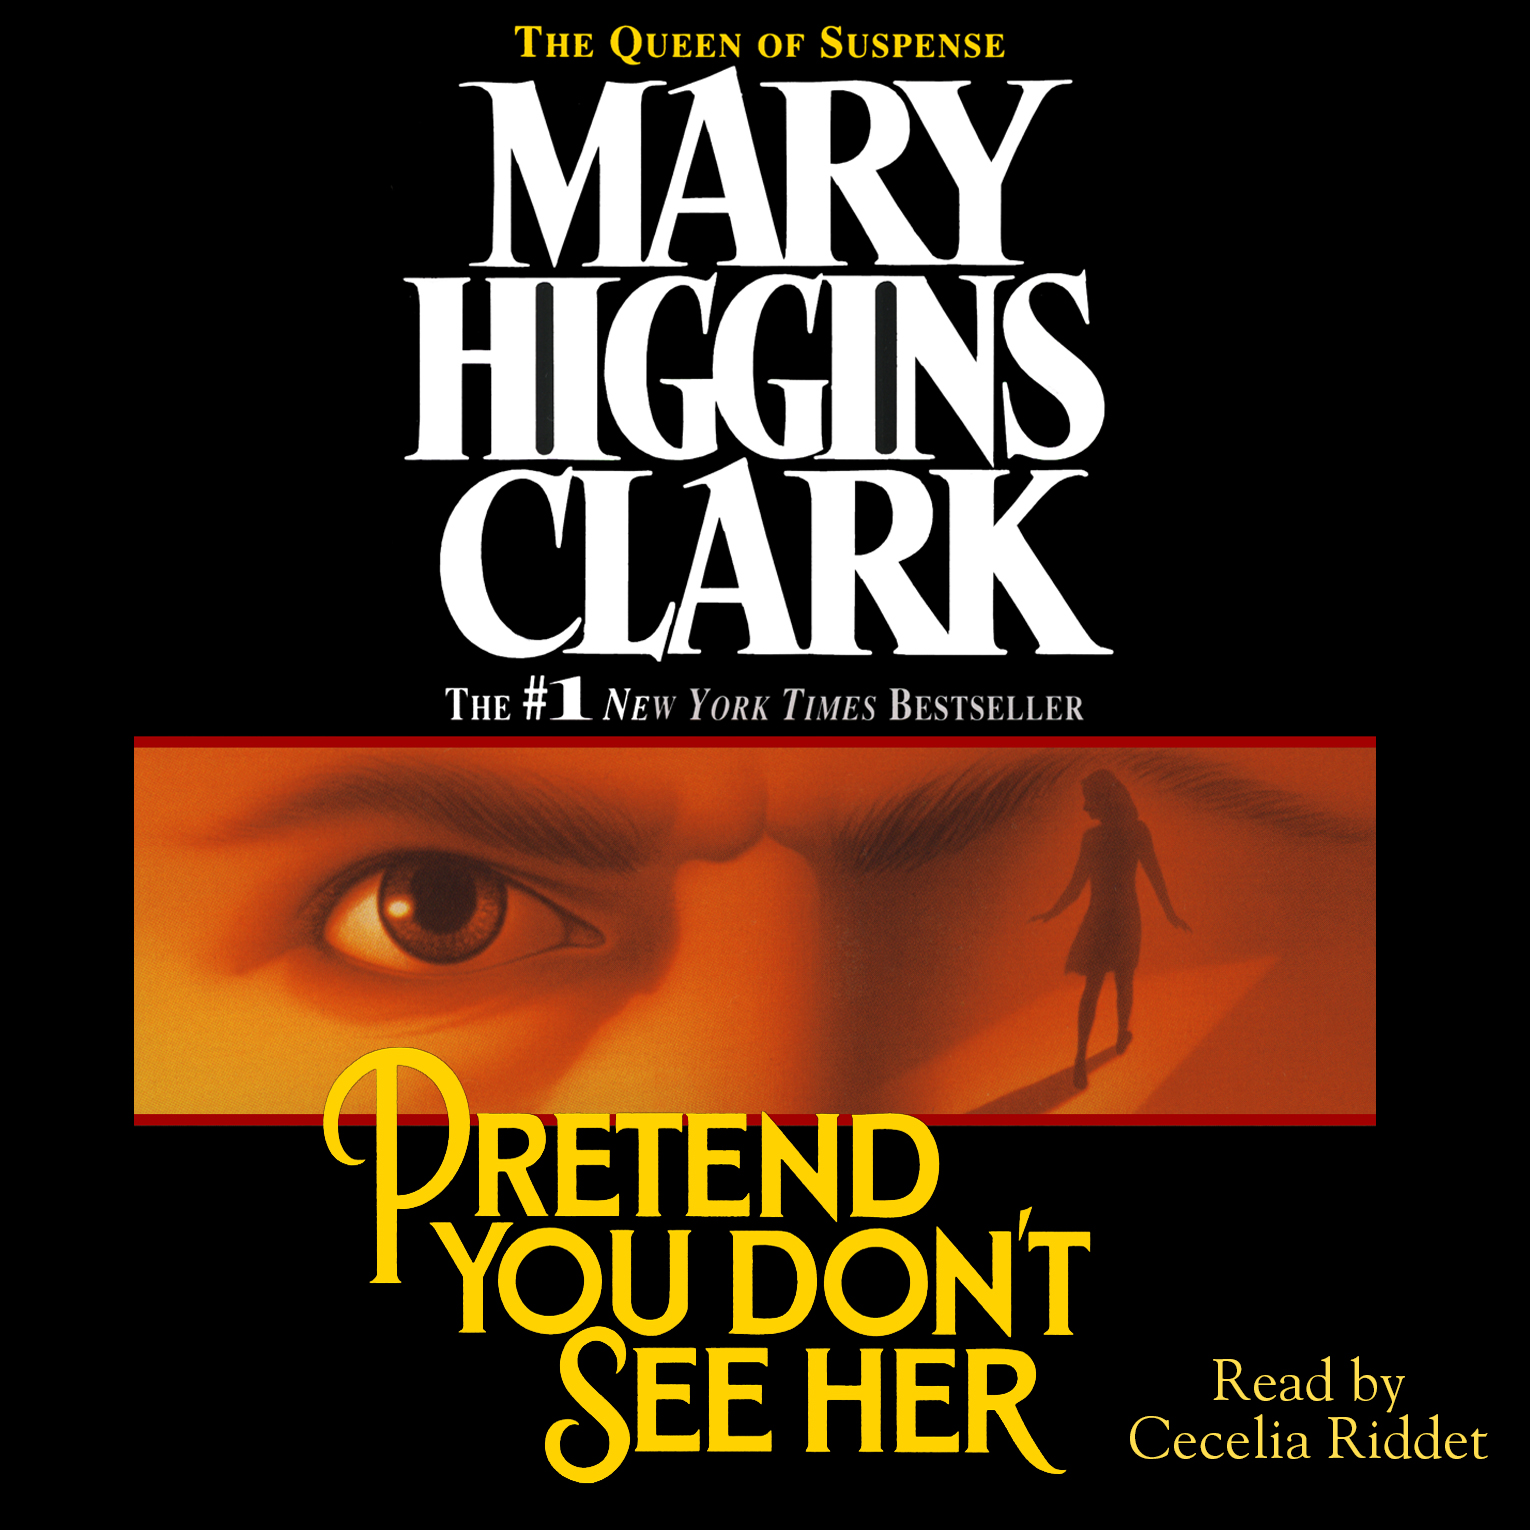 a literary analysis of murder mystery in pretend you dont see her by mary higgins clark Booktopia has pretend you don't see her by mary higgins lacey is witness to a murder for the mary higgins clark award, given by the mystery writers of.